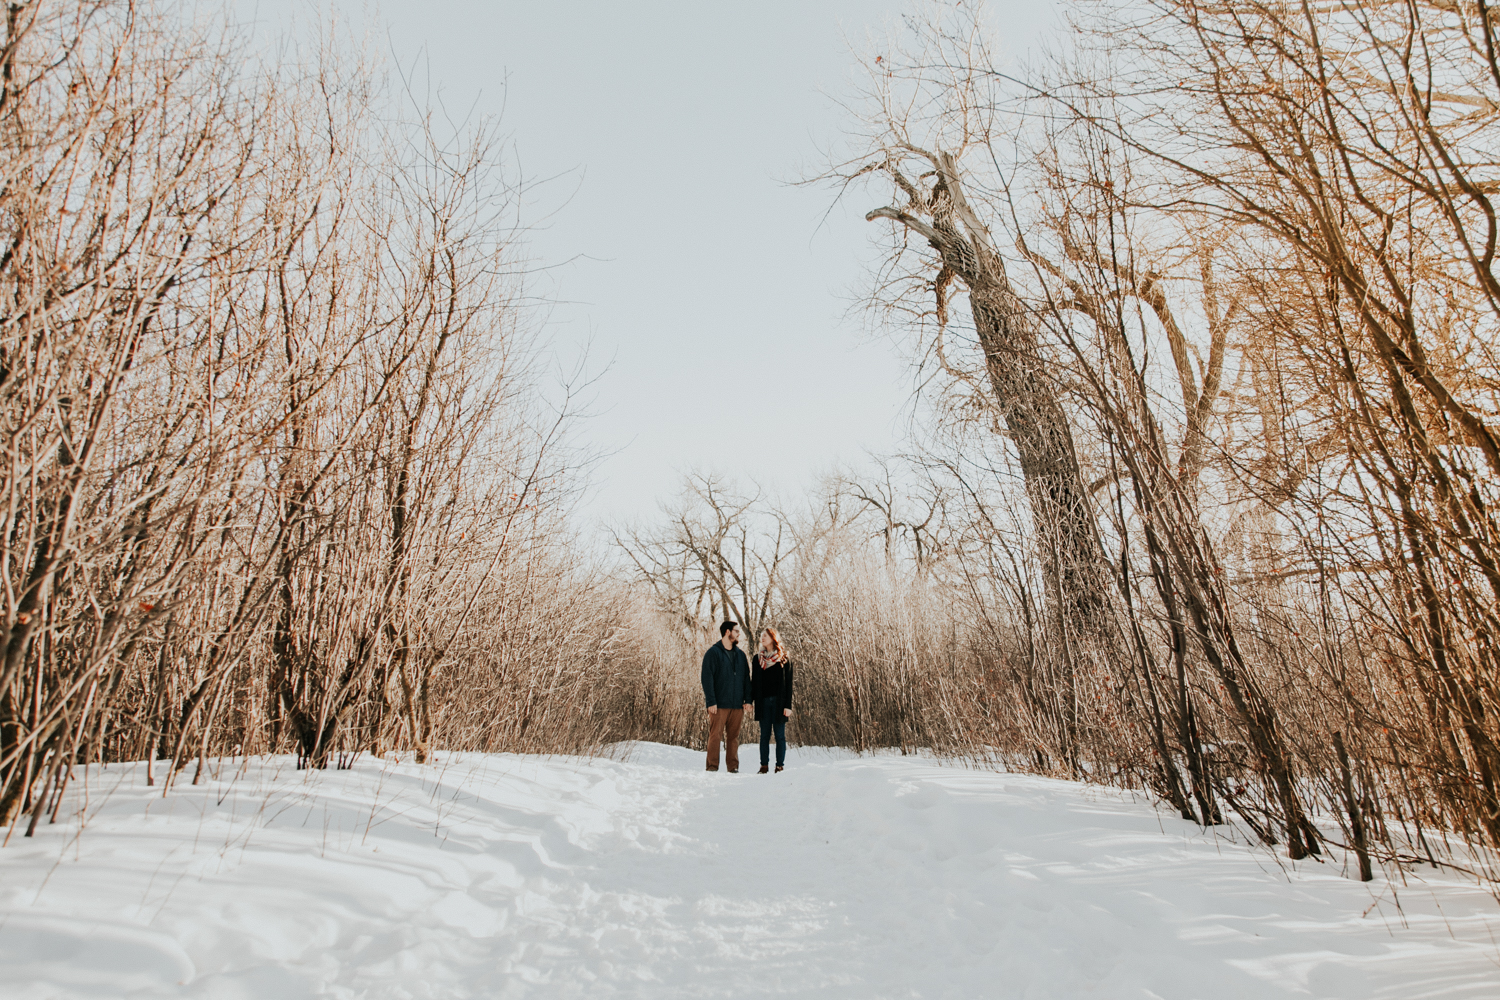 lethbridge-photography-love-and-be-loved-photographer-dan-tynnea-engagement-picture-image-photo-18.jpg